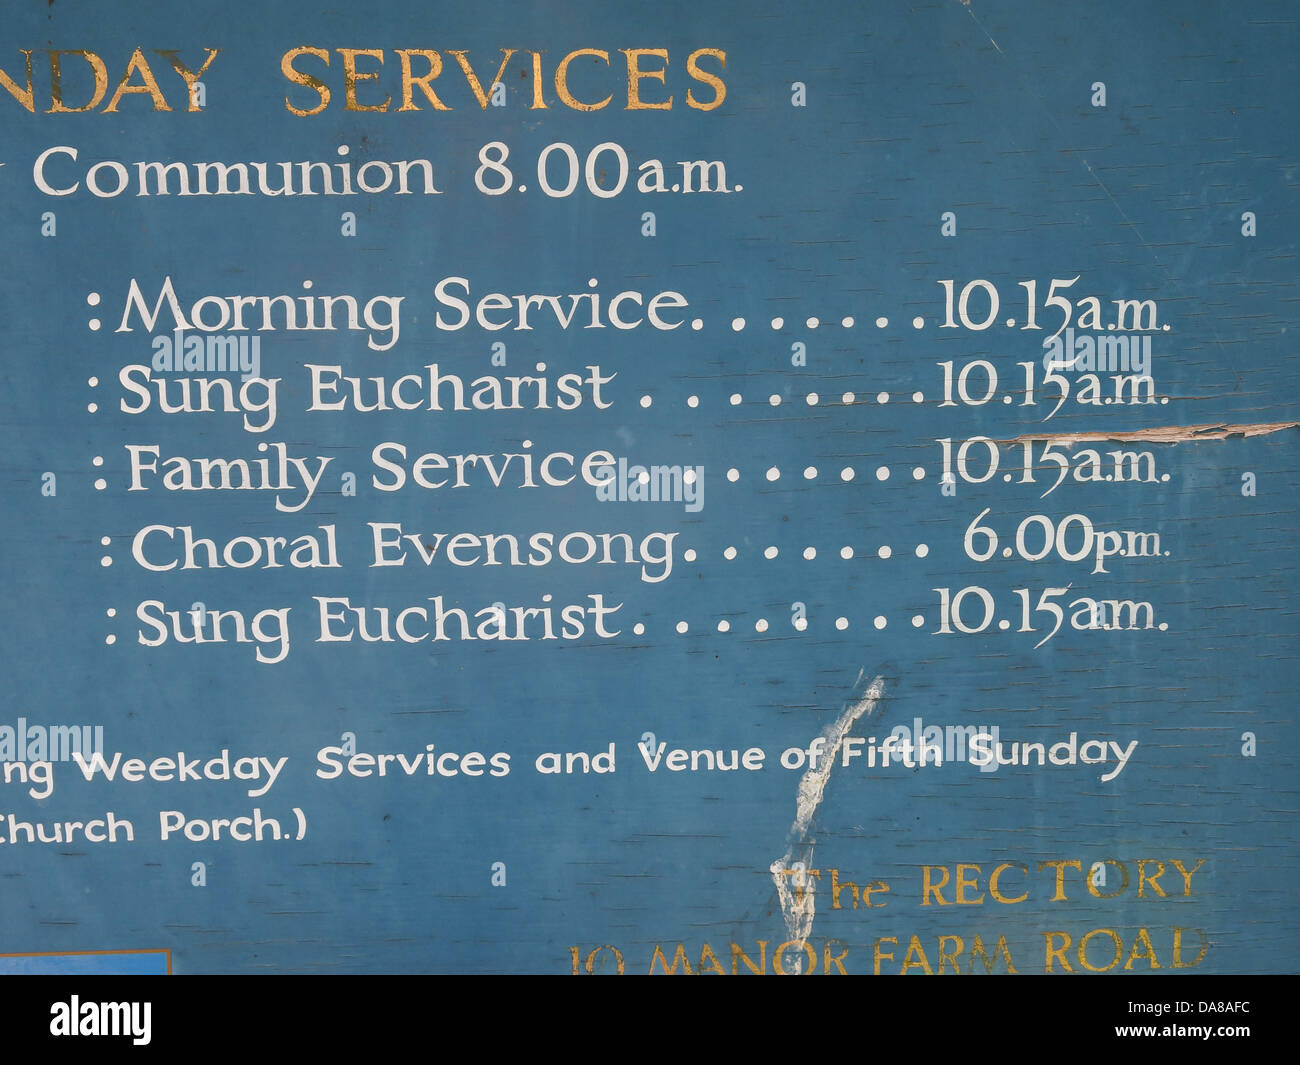 Beautiful Dorchester On Thames Abbey Church of St Peter & St Paul services board detail - Stock Image